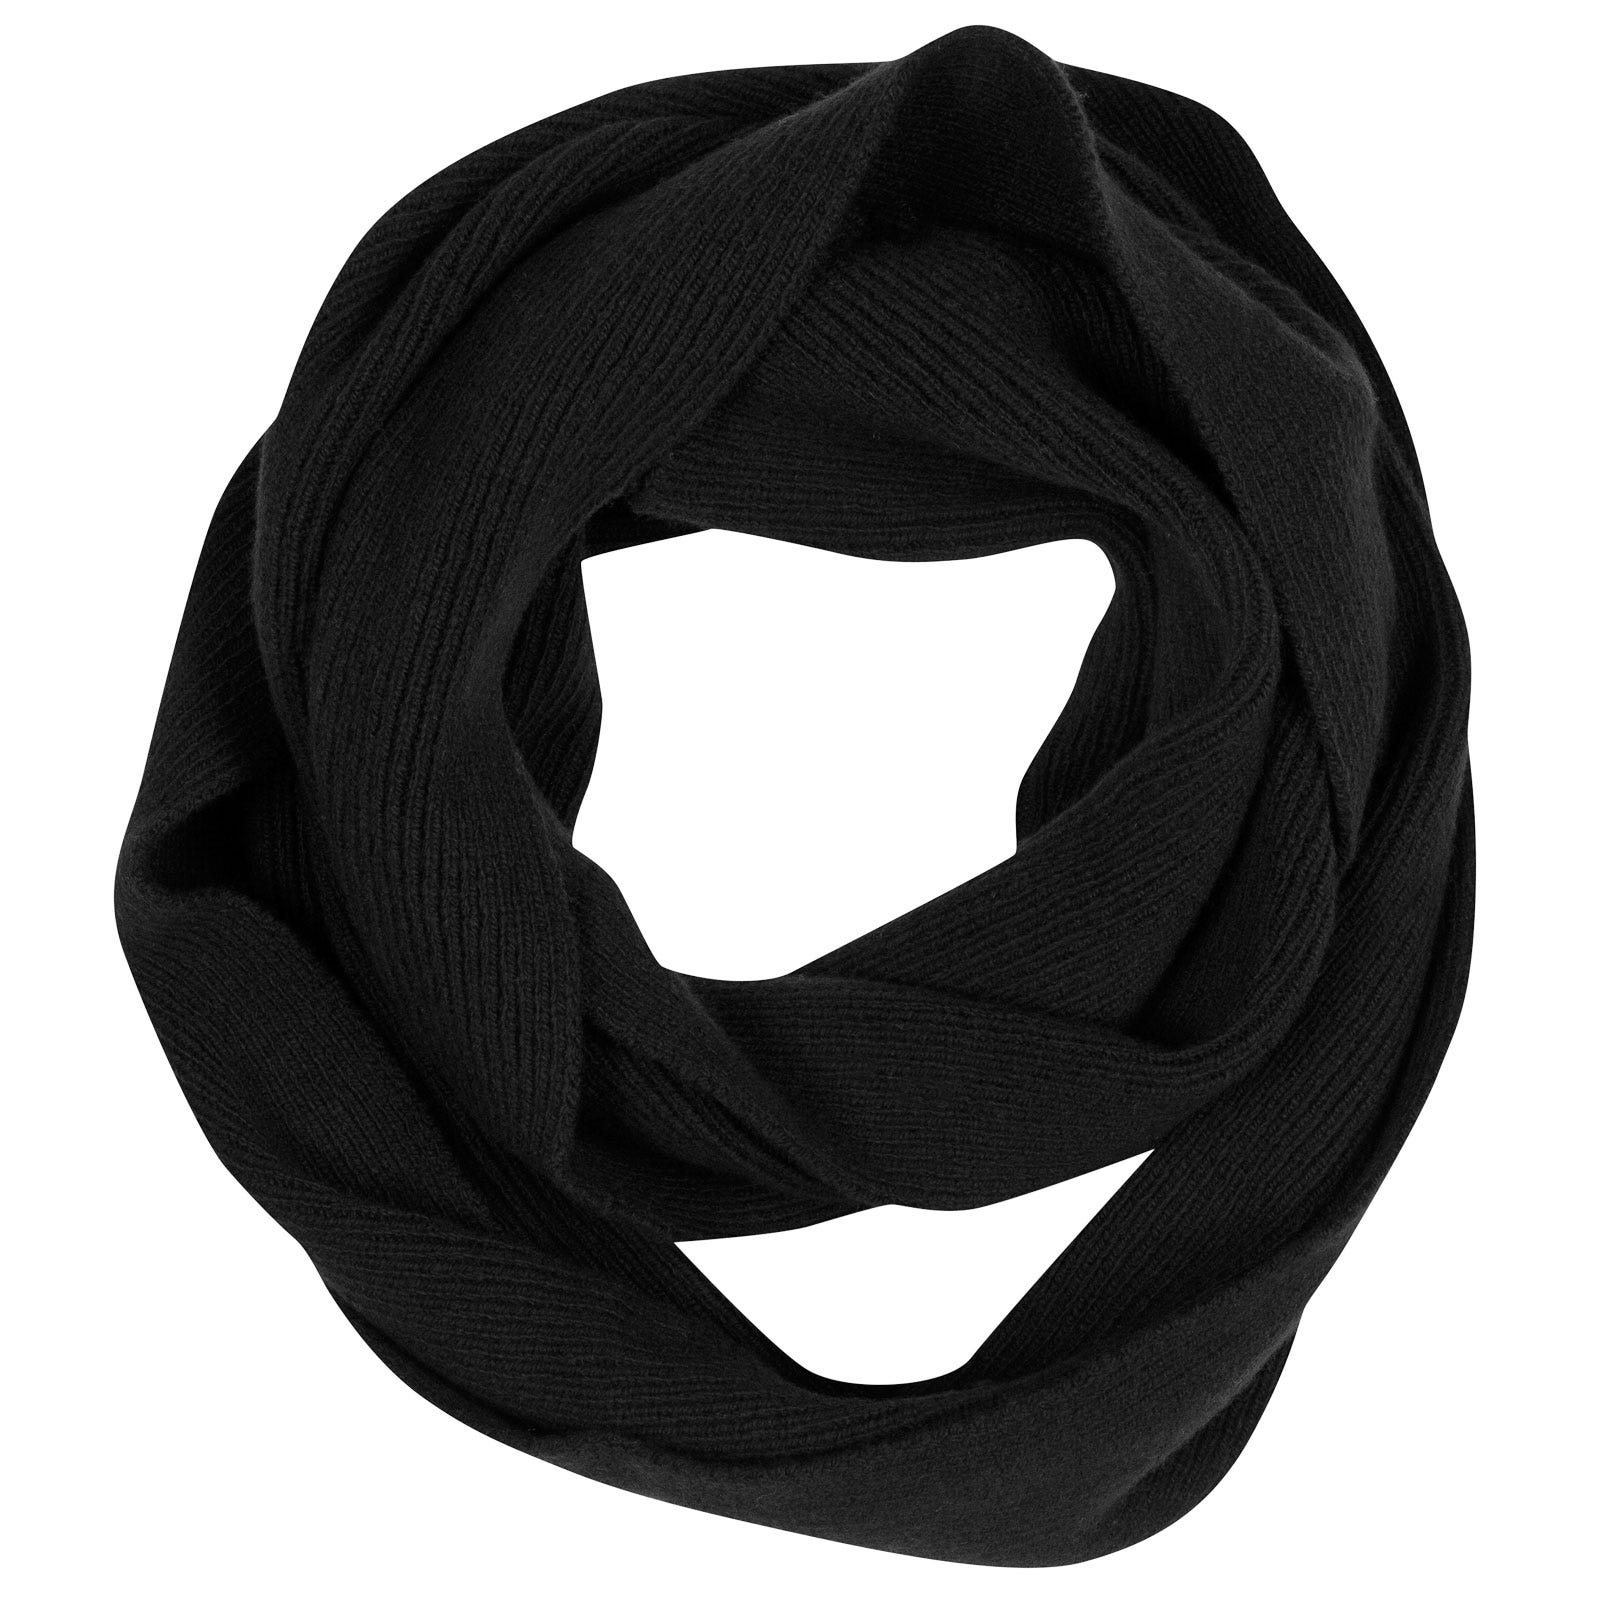 John Smedley solar Wool and Cashmere Scarf in Black-ONE